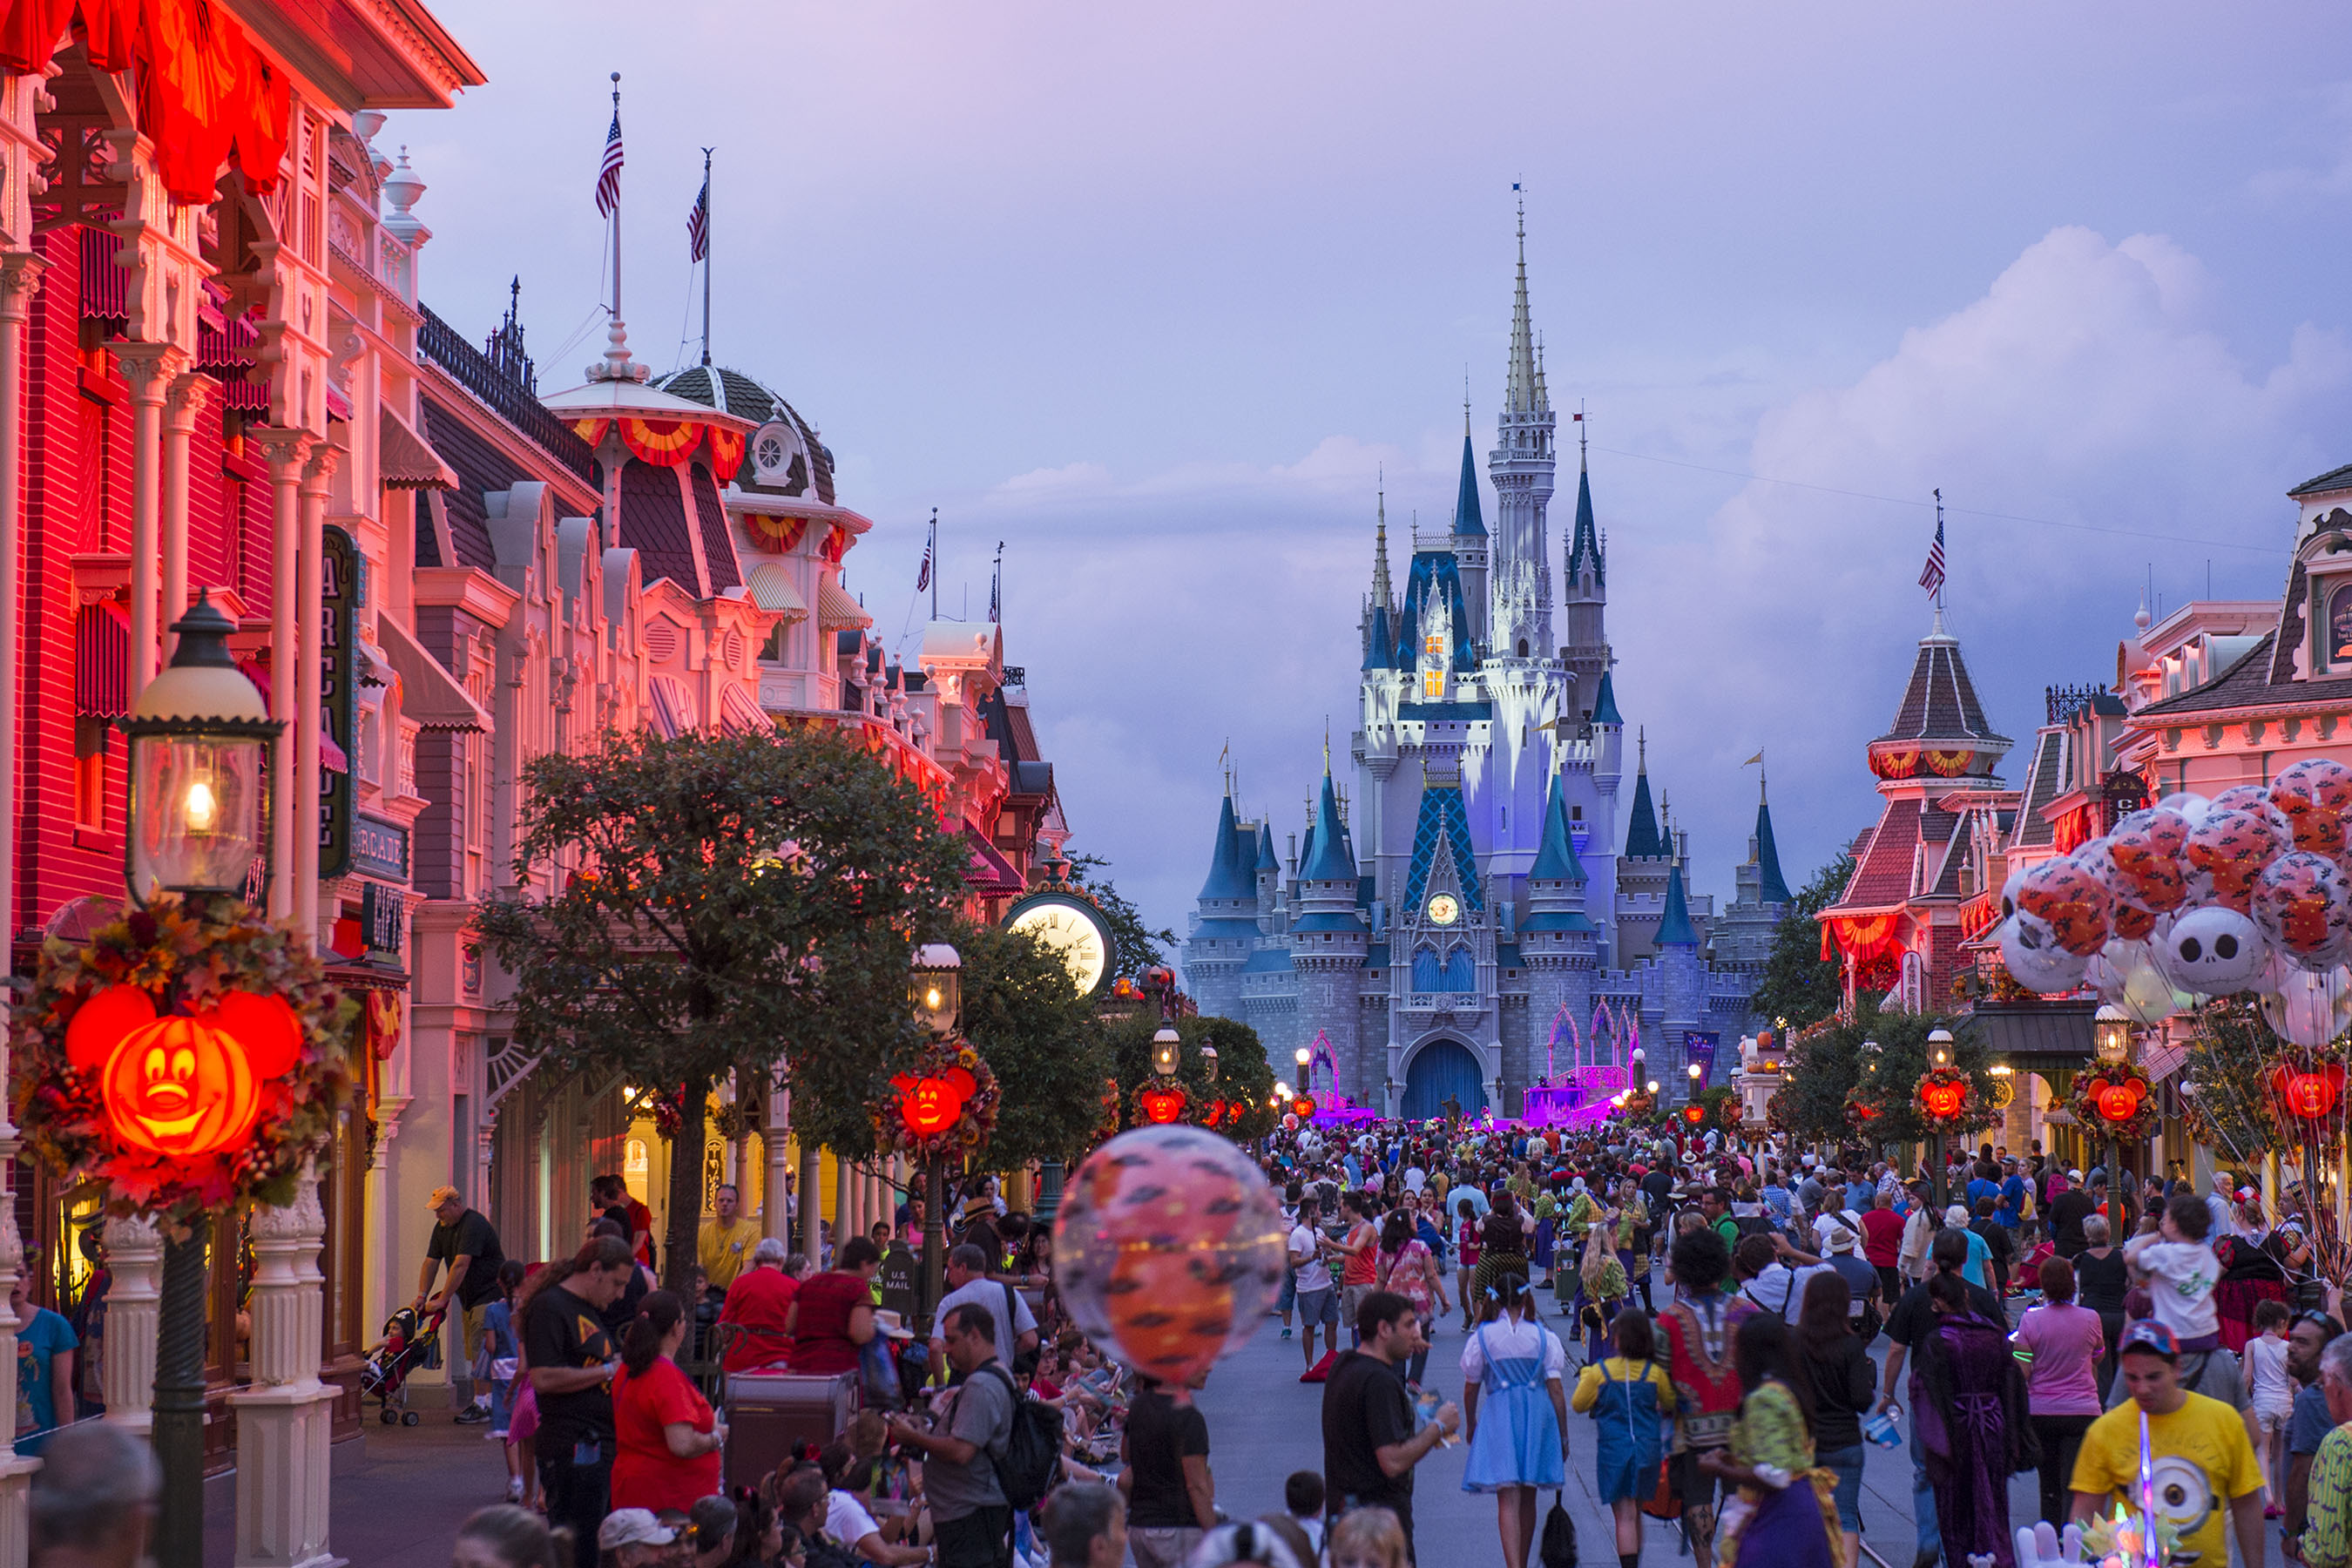 what's new at mickey's not-so-scary halloween party in 2018